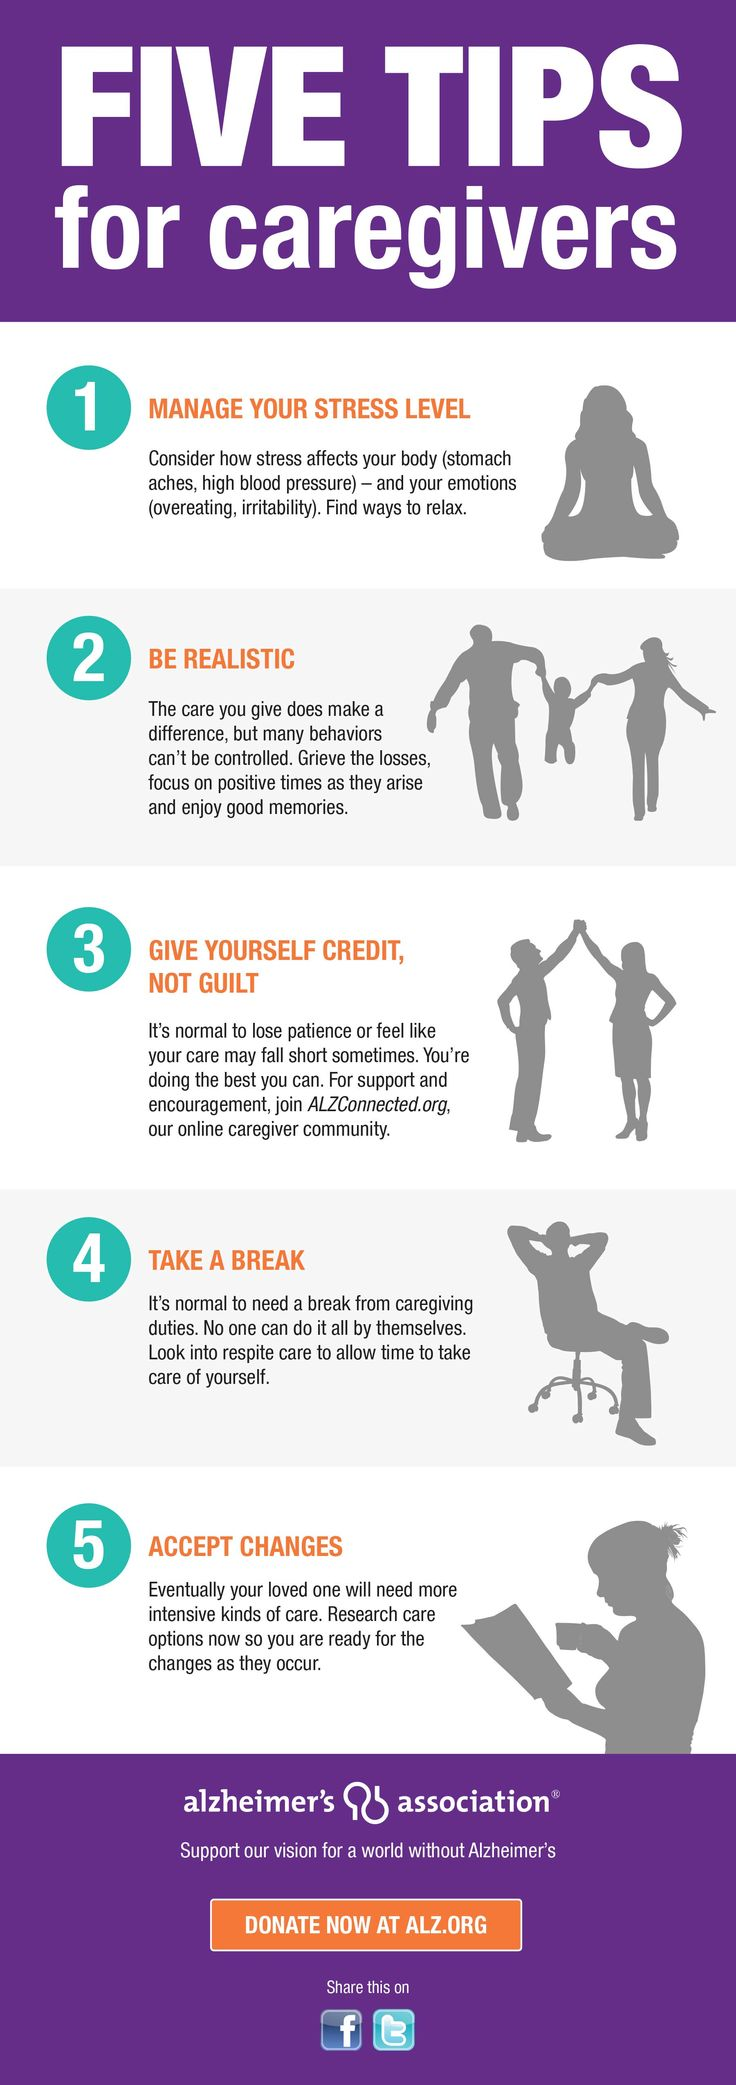 Five tips for caregivers by Alzheimer's Assoc. #ENDALZ  #caregiving